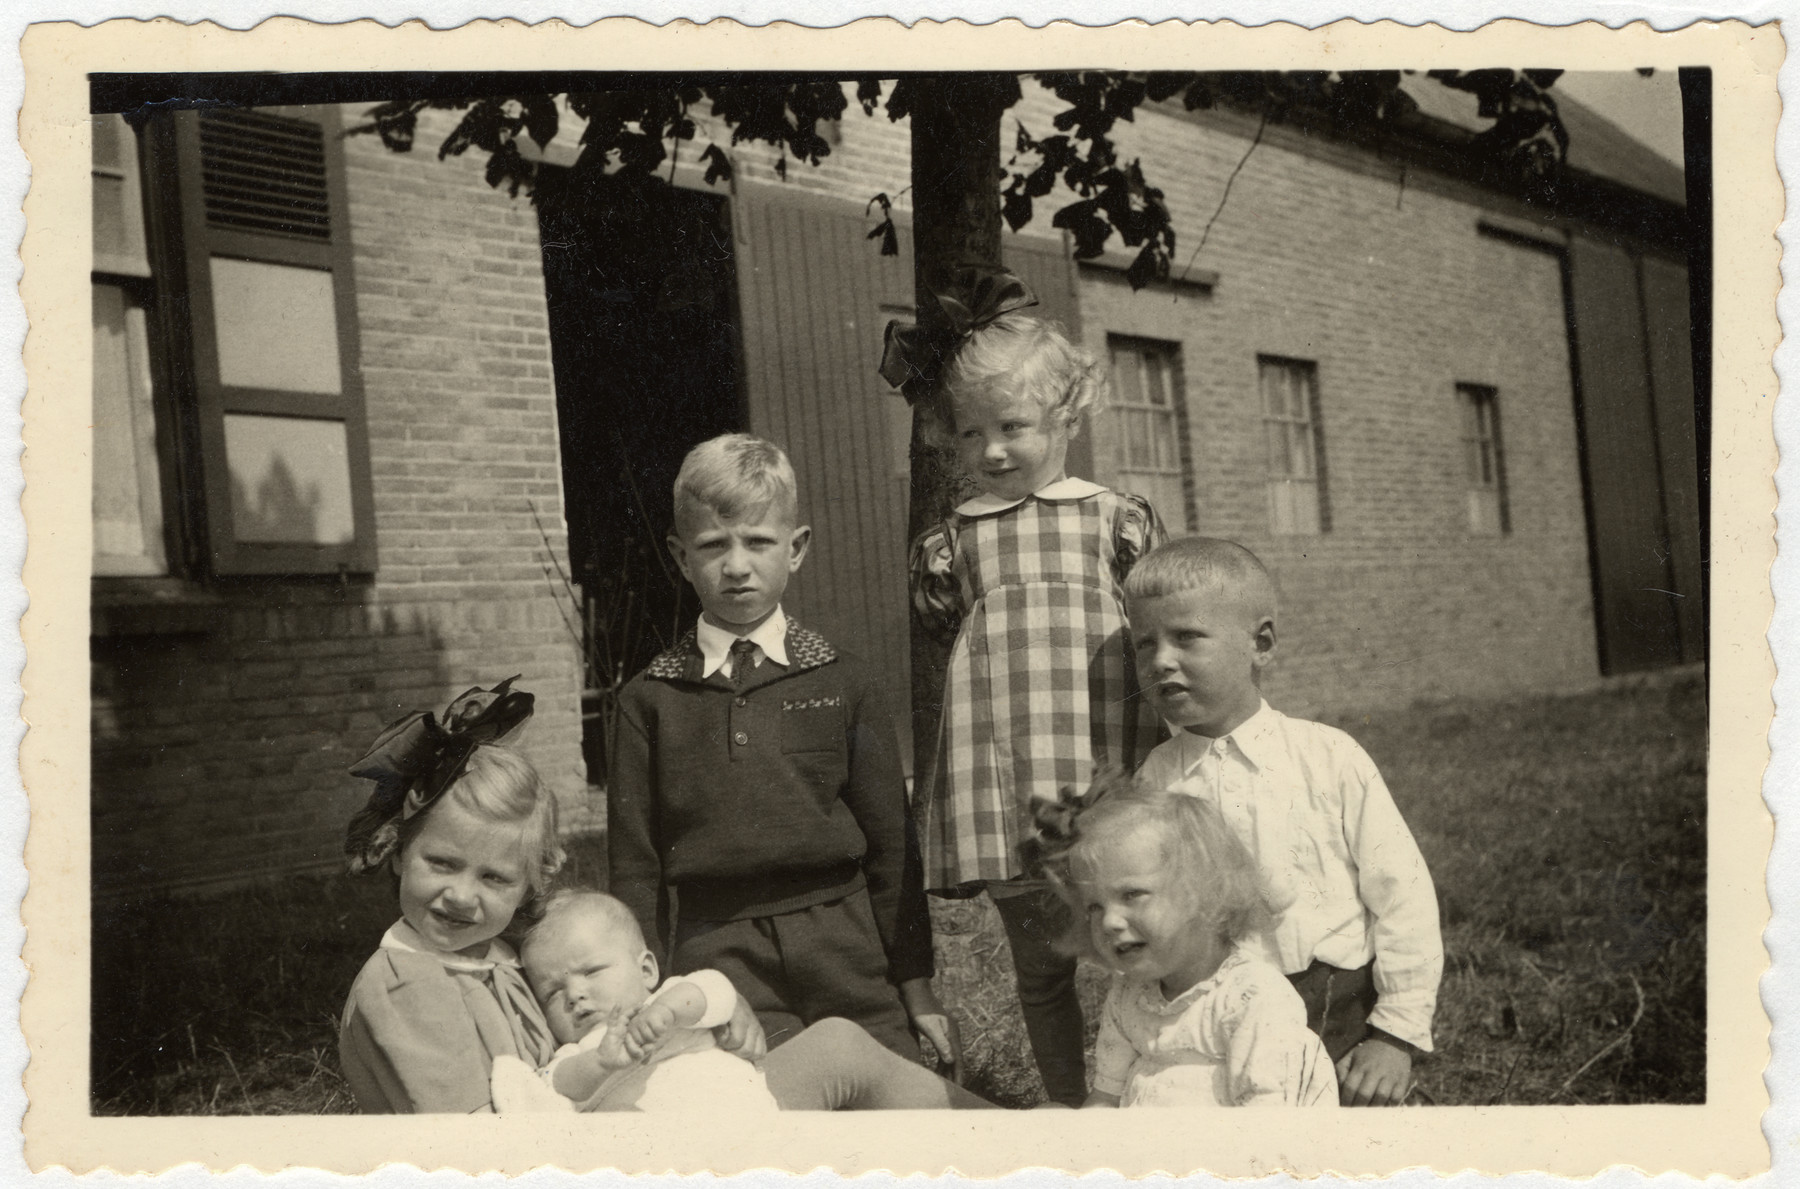 Portrait of six young children of a farmer in southern Holland where Minnie van Dam was hiding.  She did housework for the family and cared for the children.  Pictured are Nellie, Christiaan, Maria, Antoon, Joke and Jan van Hiet.